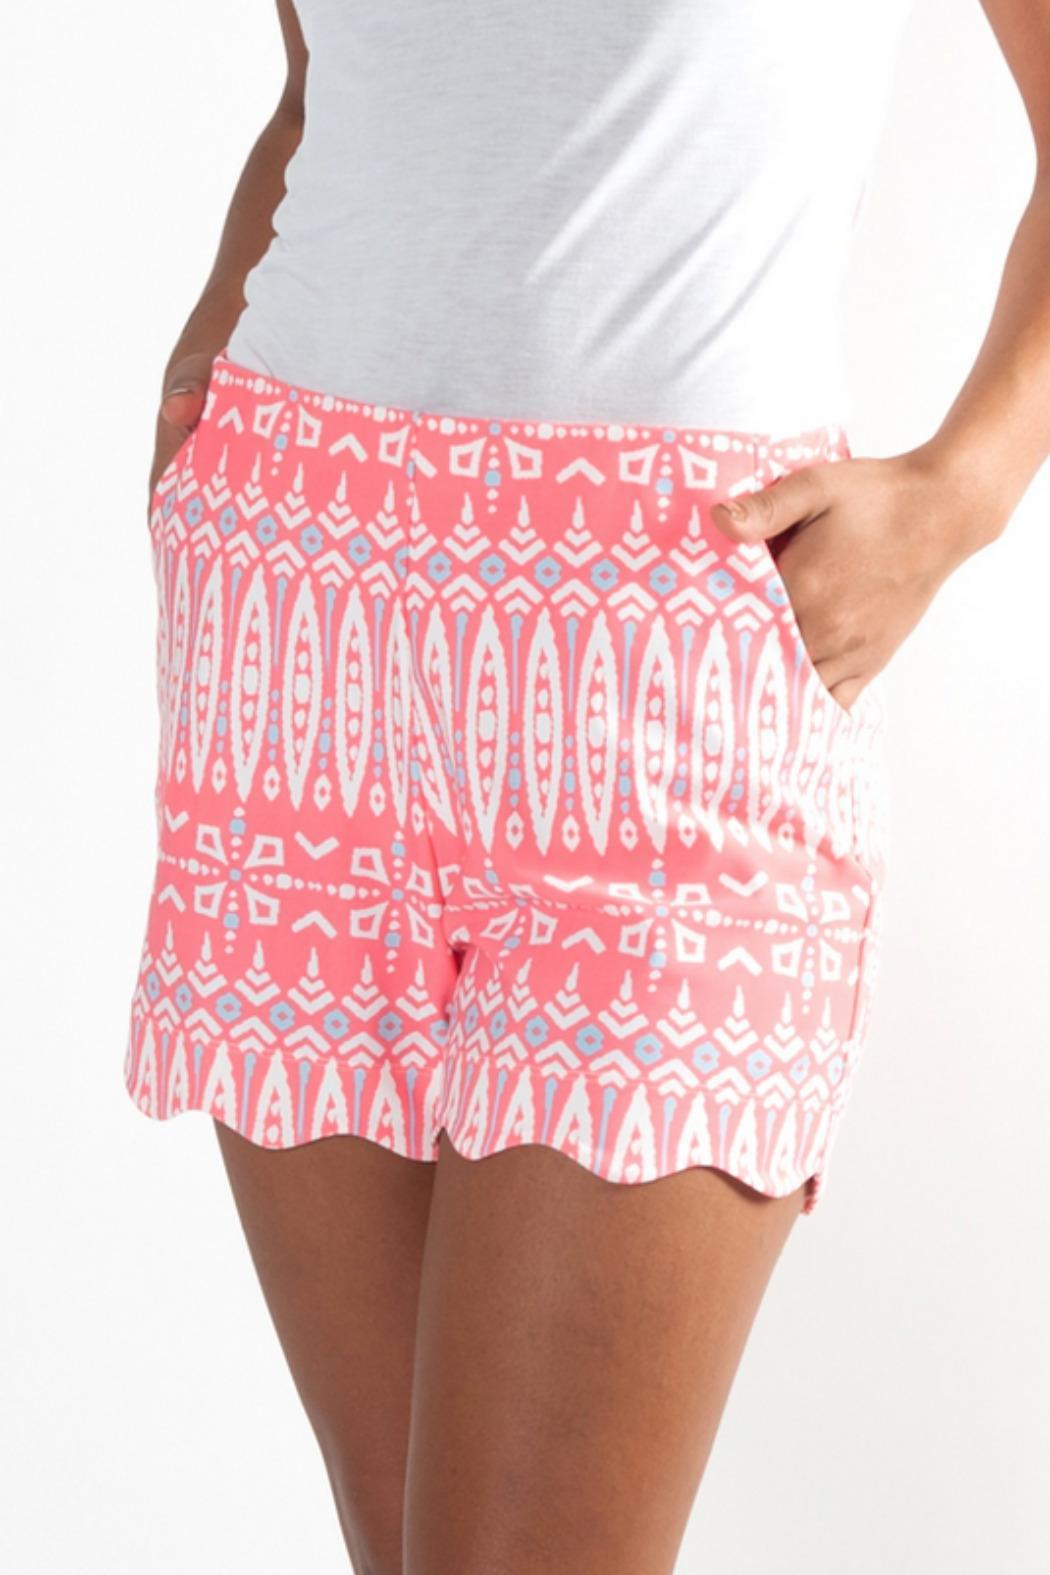 All For Color Tiki Tide Short from Alabama by JoJo — Shoptiques